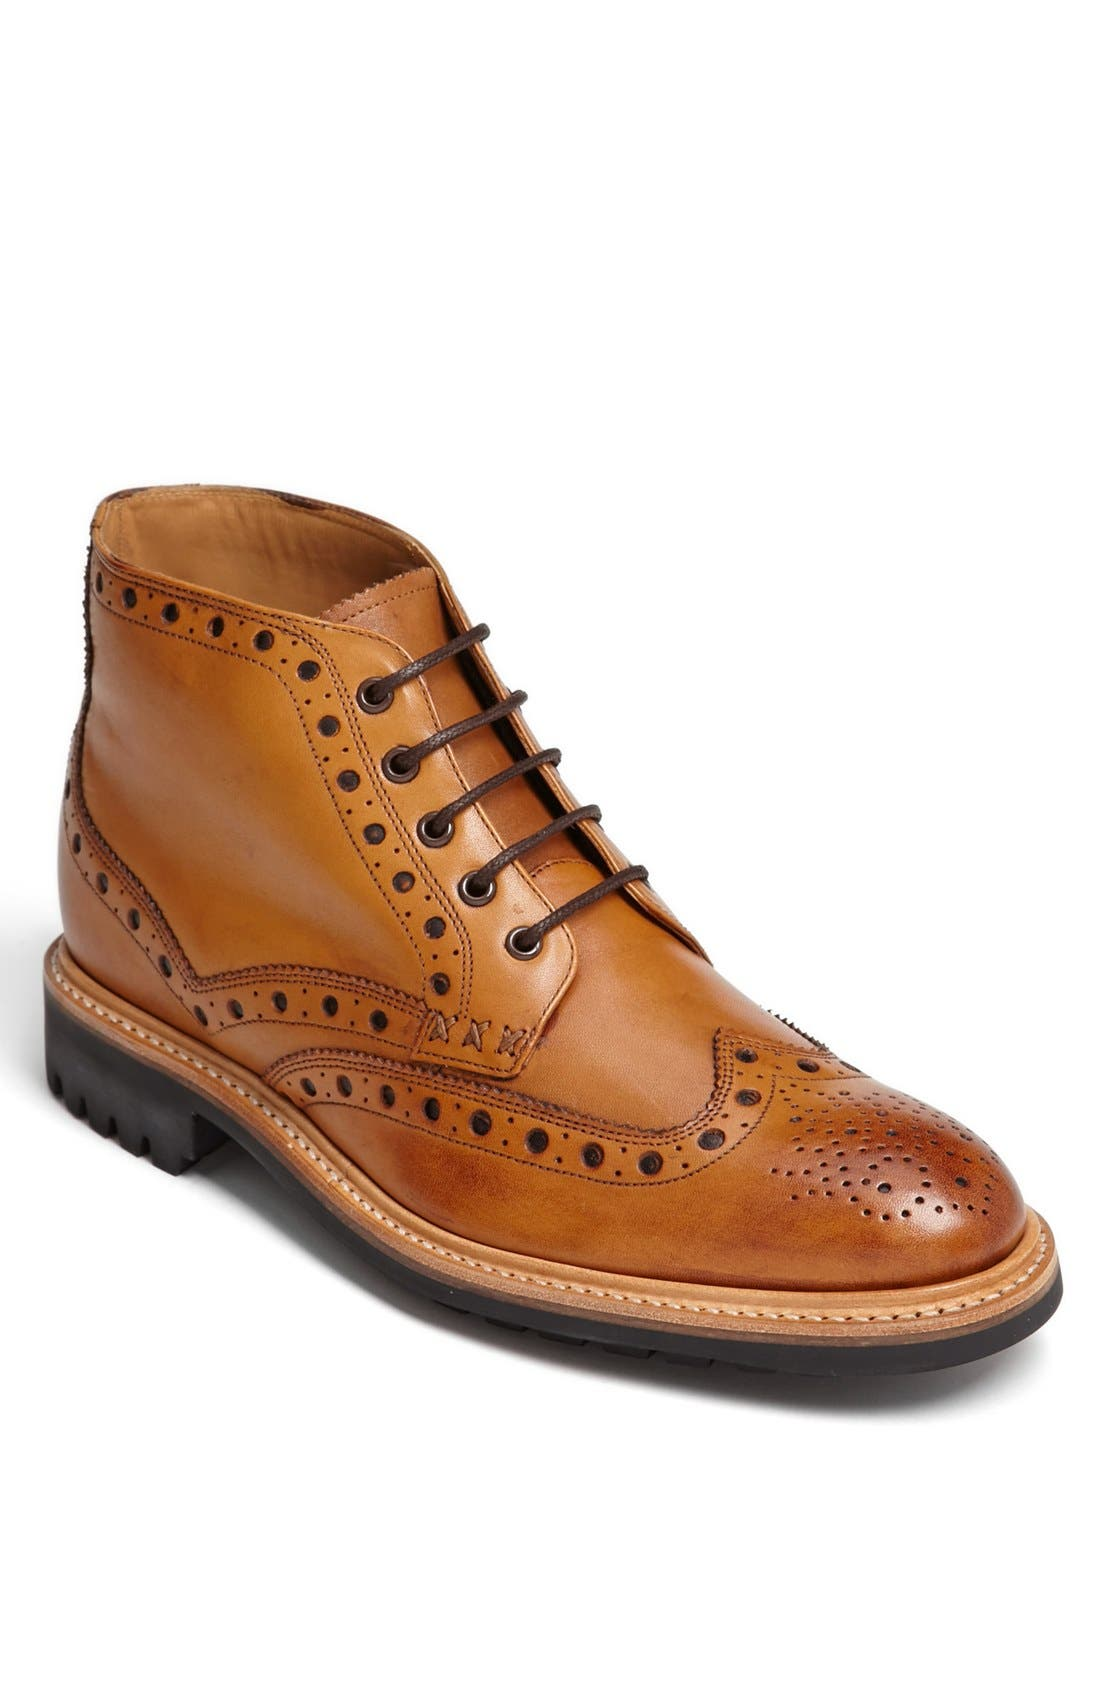 Main Image - Oliver Sweeney 'Lawshall' Wingtip Boot